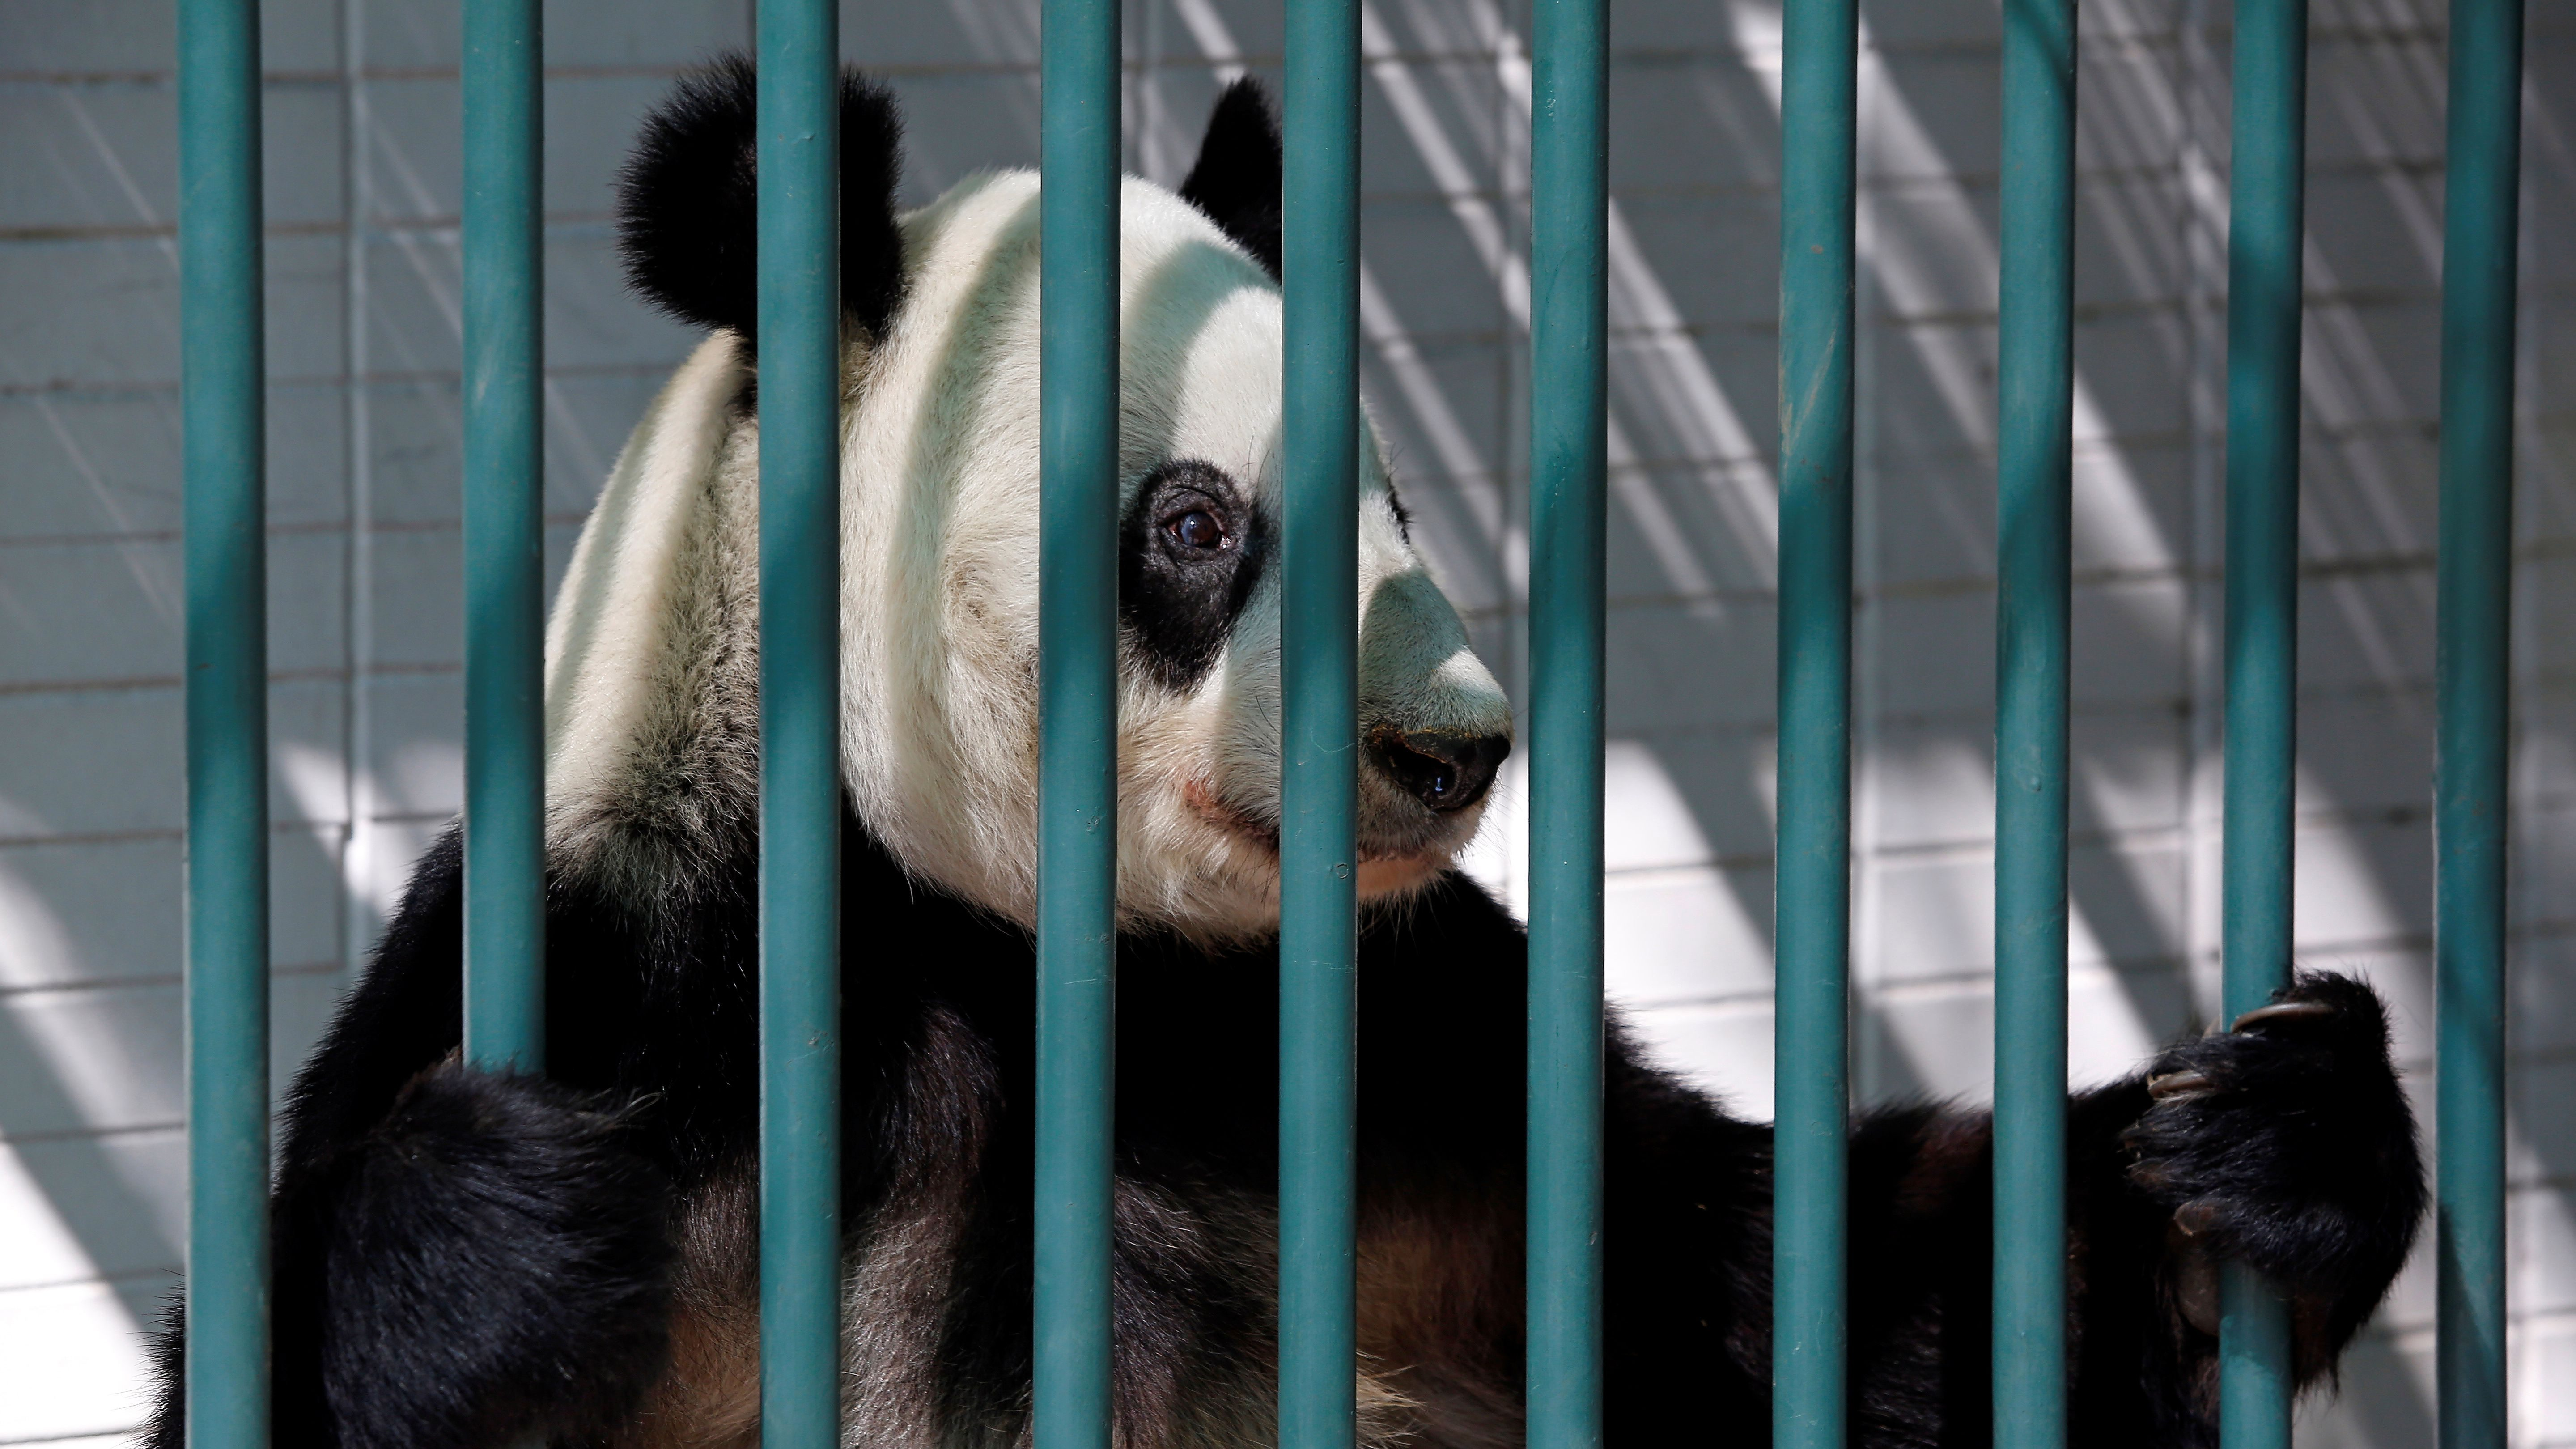 Xin Xin, a female giant panda, is pictured inside her enclosure at Chapultepec zoo in Mexico City, Mexico May 25, 2018.